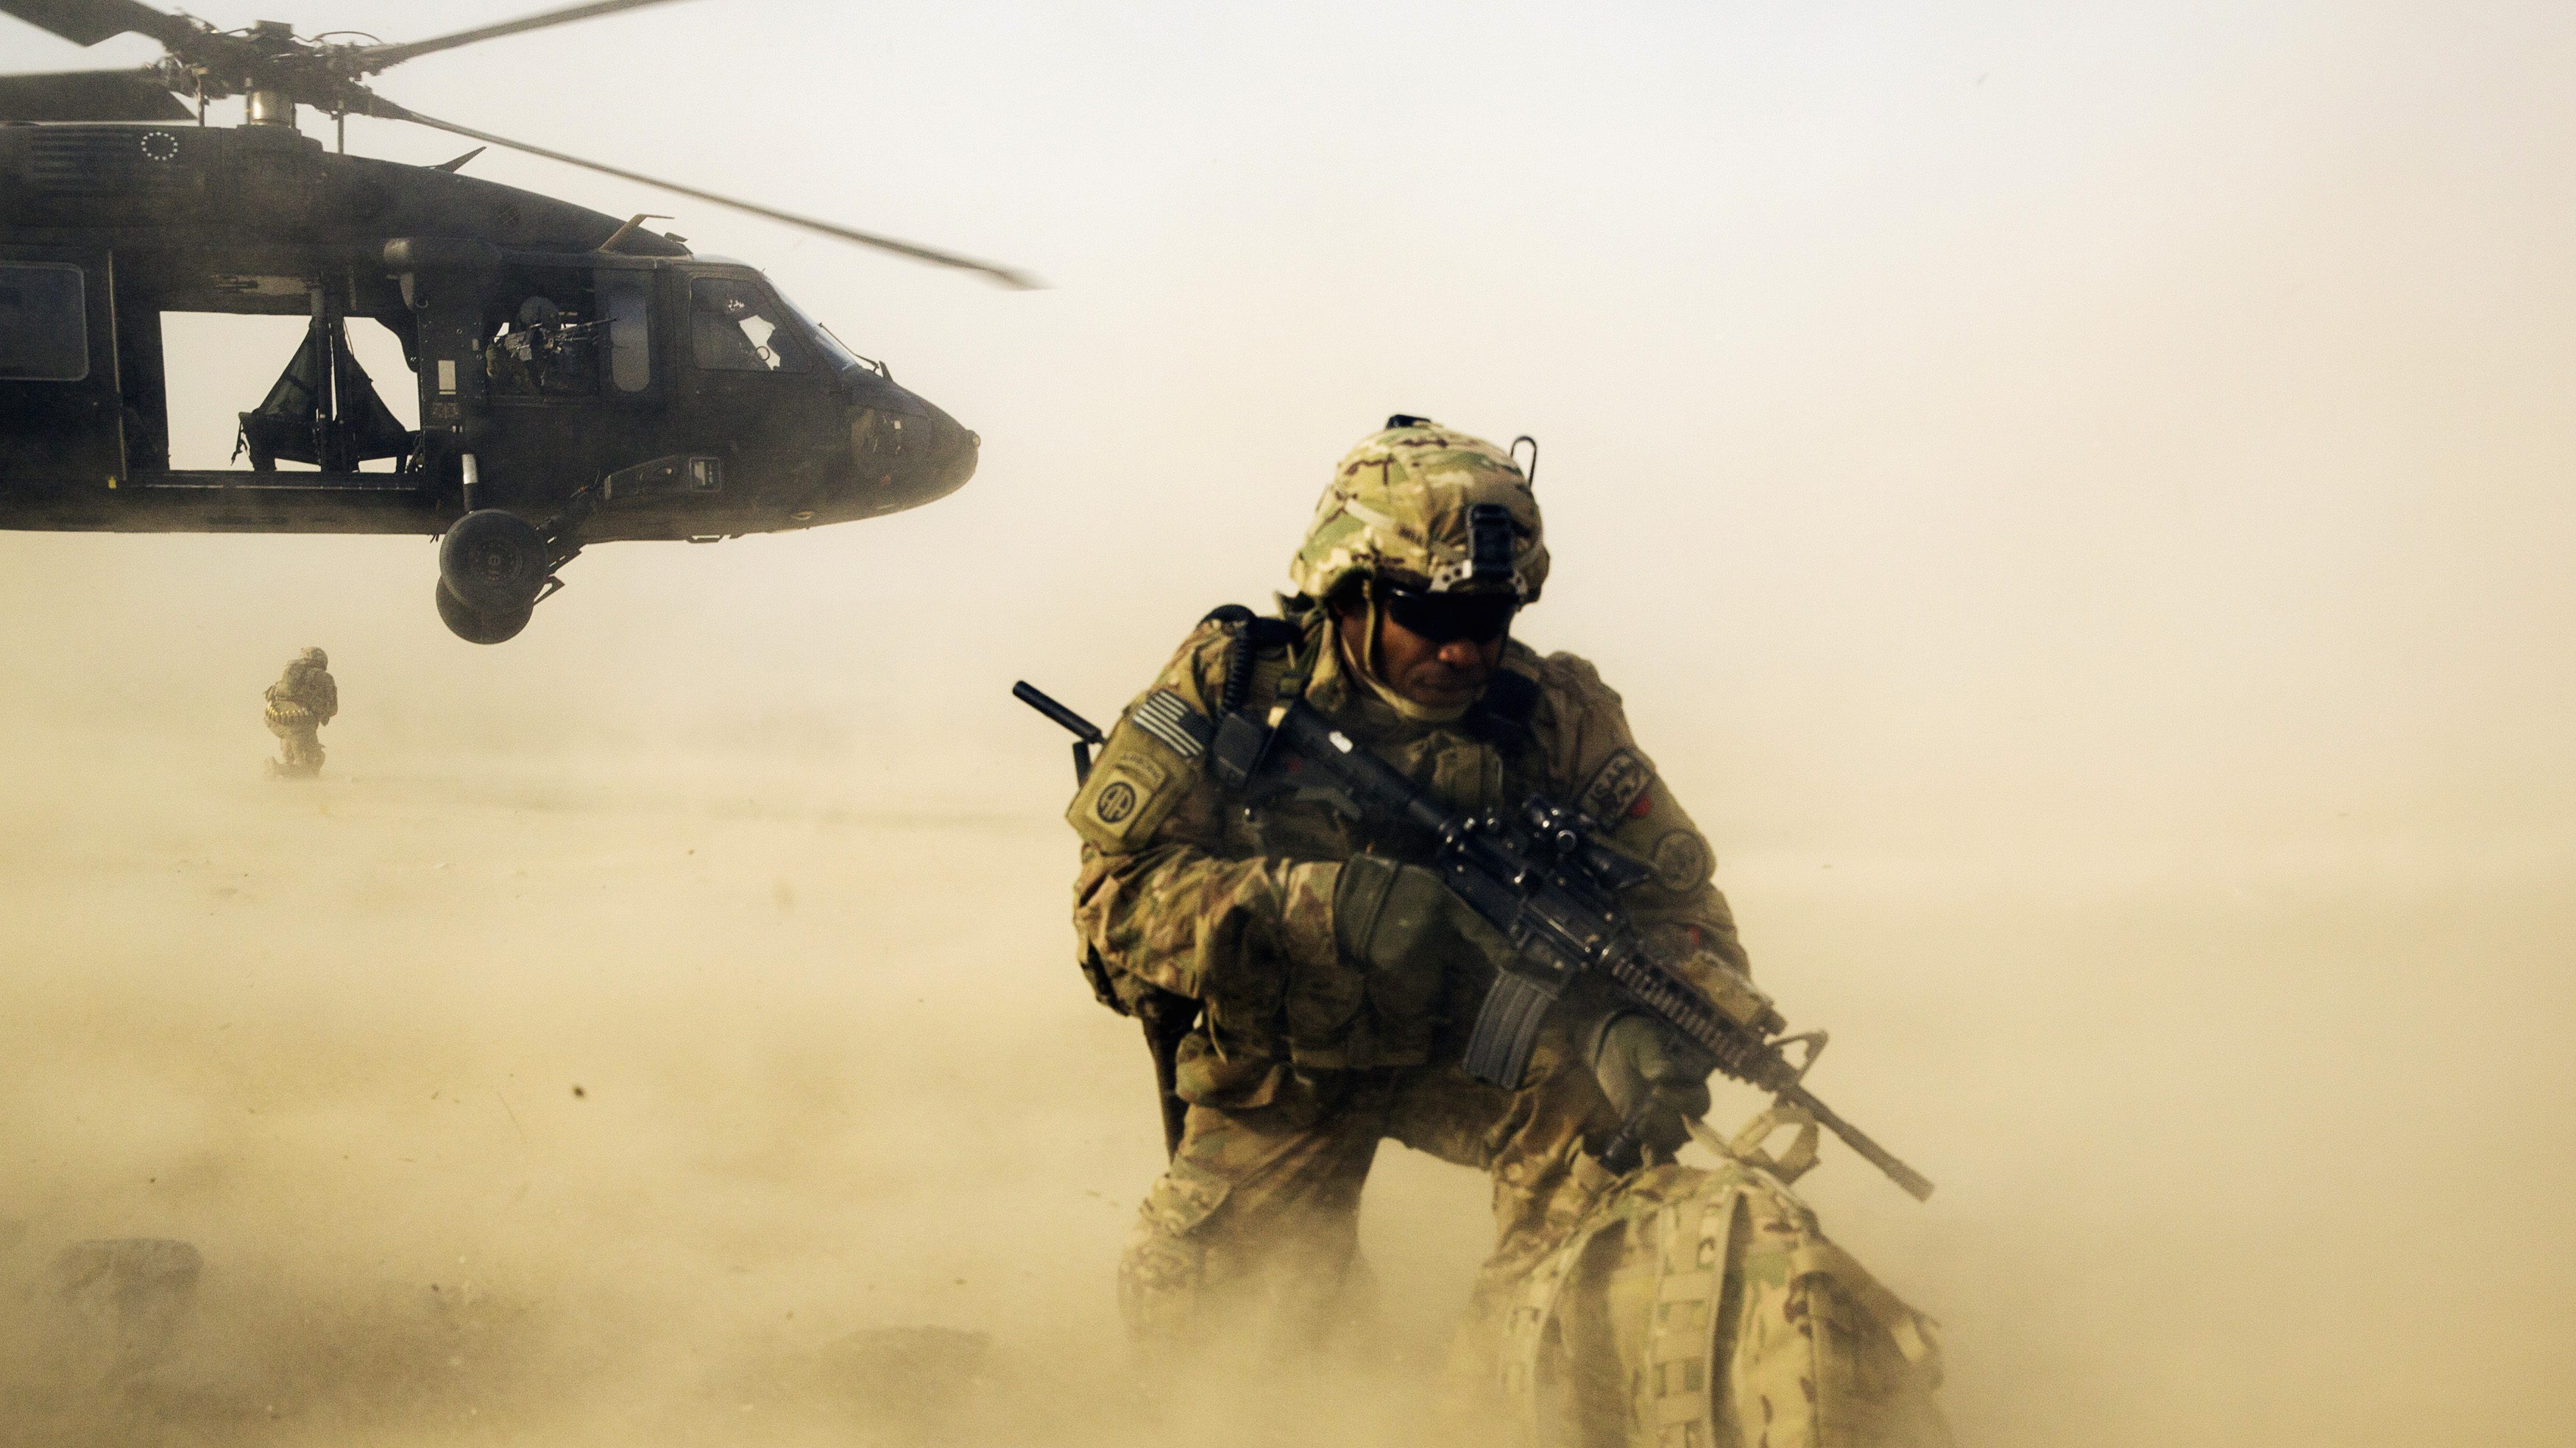 A U.S. soldier from the 3rd Cavalry Regiment shields himself from the rotor wash of a UH-60 Blackhawk helicopter after being dropped off for a mission with the Afghan police near Jalalabad in the Nangarhar province of Afghanistan December 20, 2014. REUTERS/Lucas Jackson (AFGHANISTAN - Tags: TRANSPORT CIVIL UNREST MILITARY POLITICS TPX IMAGES OF THE DAY) - RTR4IRXO